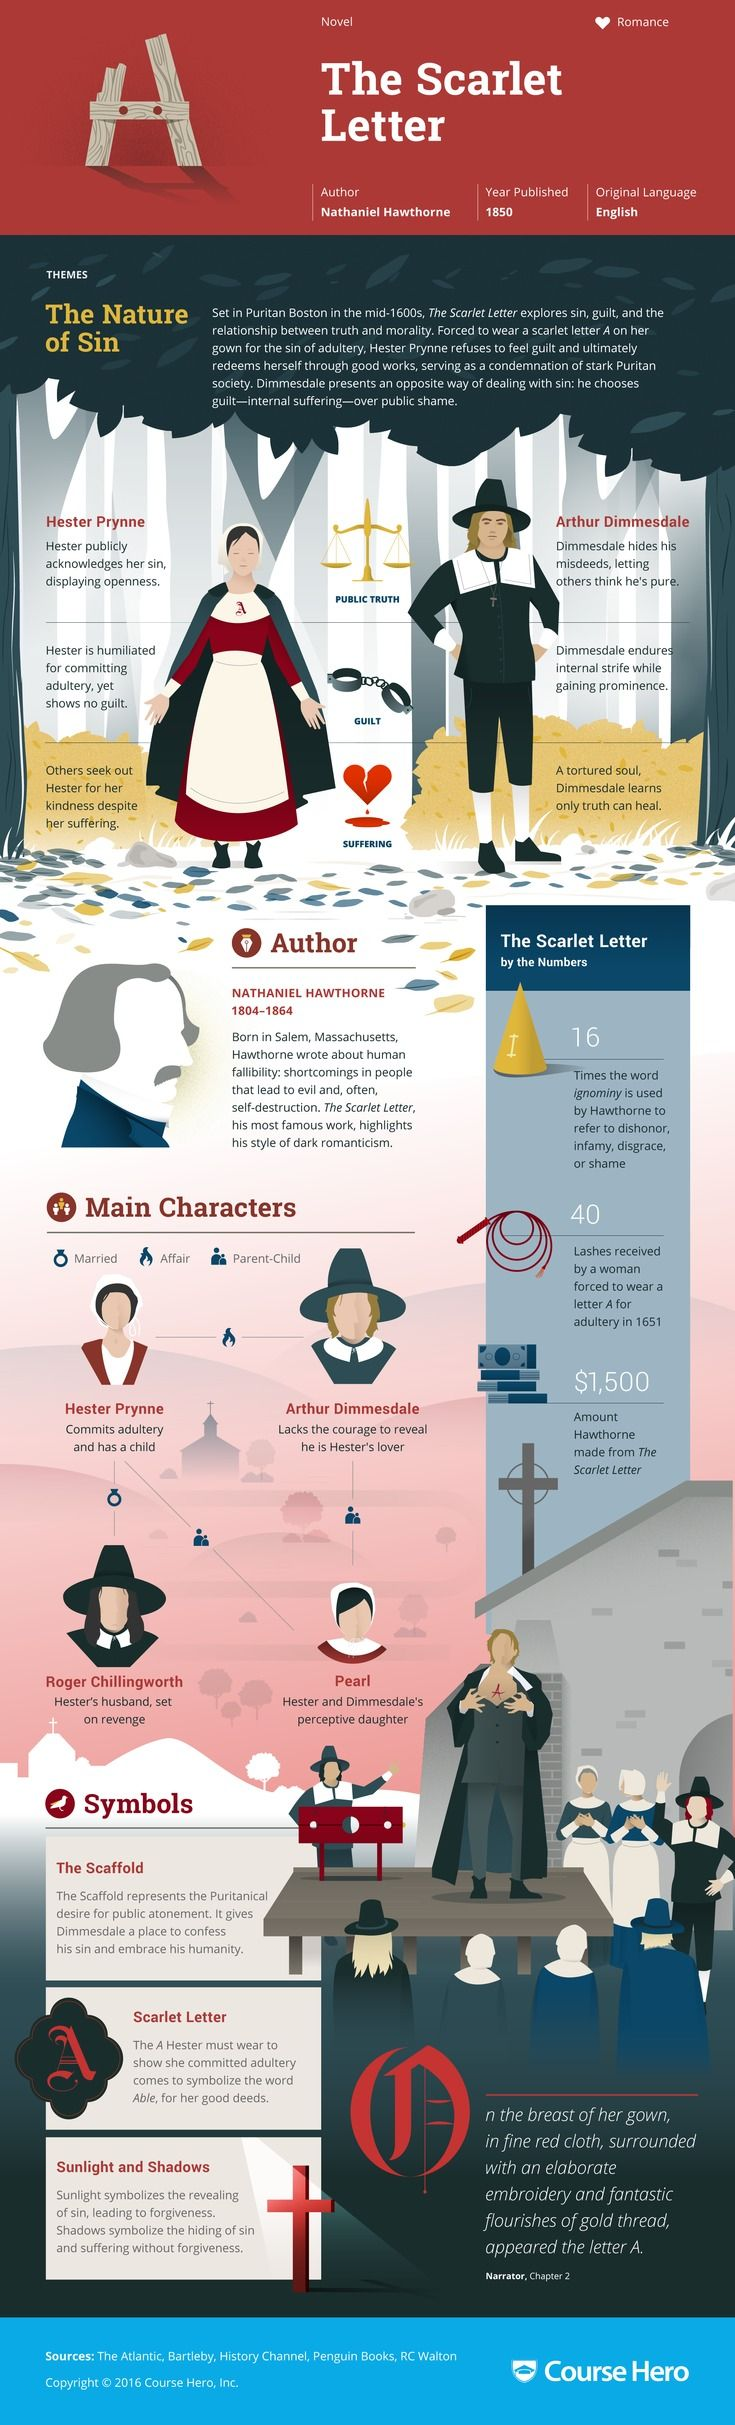 modern format of letter writing%0A This  CourseHero infographic on The Scarlet Letter is both visually  stunning u